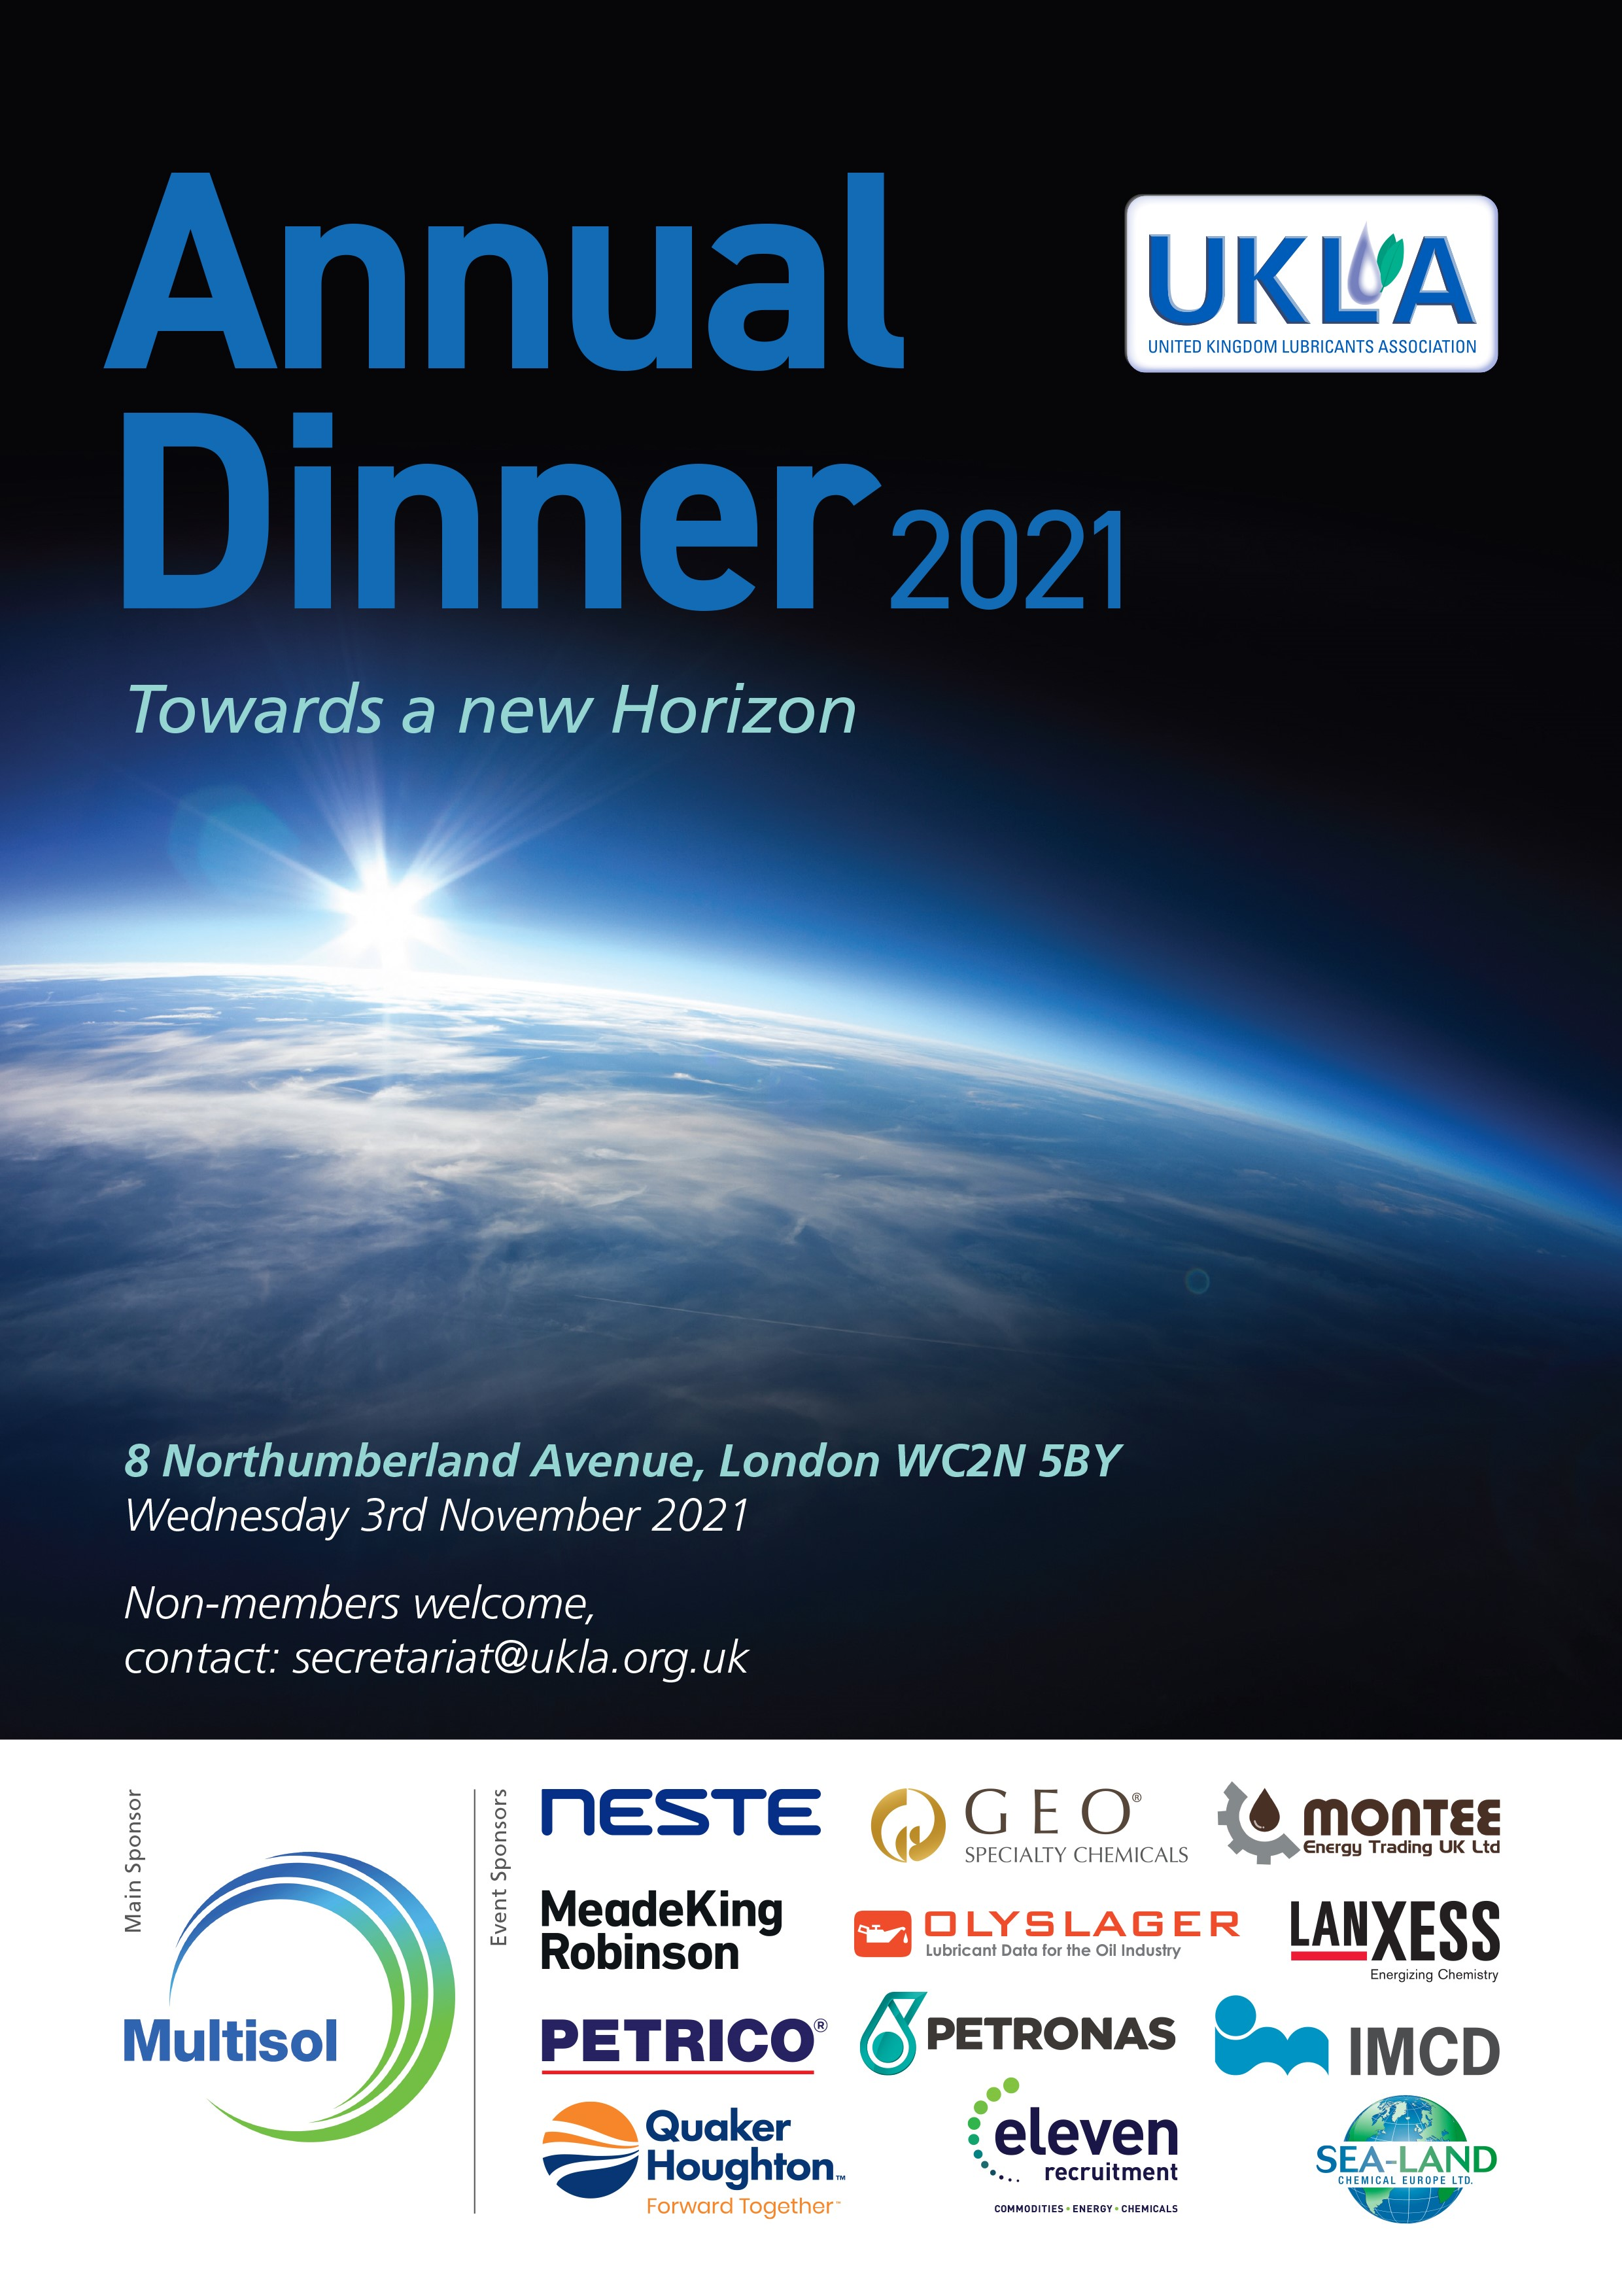 Annual Dinner Ad 2021